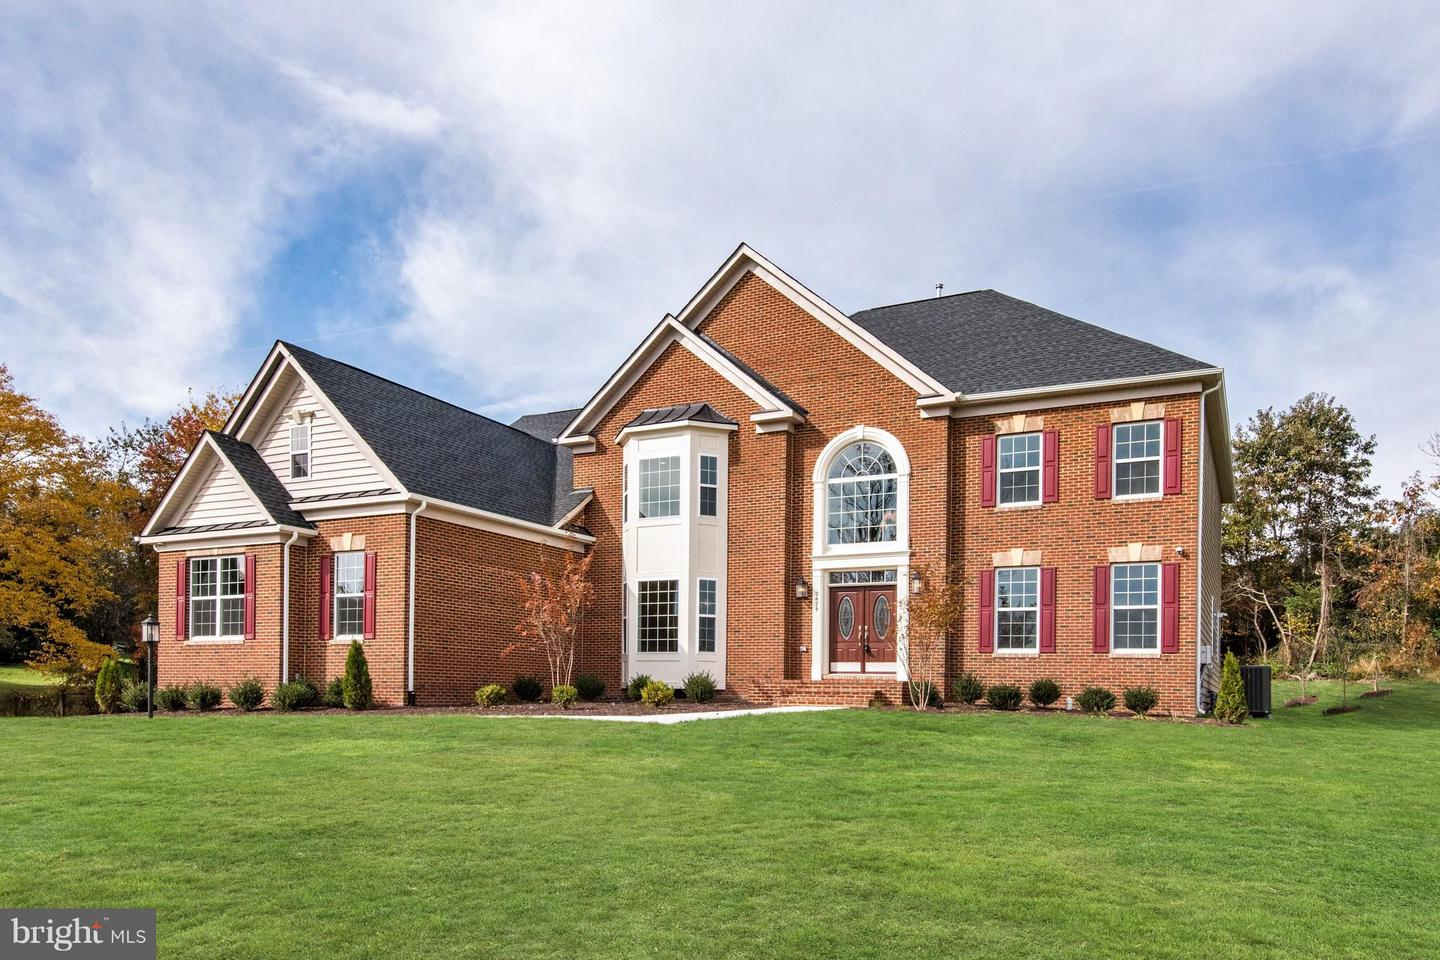 Single Family Home for Sale at 9474 Lake Hill Farms Dr #2-3 9474 Lake Hill Farms Dr #2-3 Lorton, Virginia 22079 United States